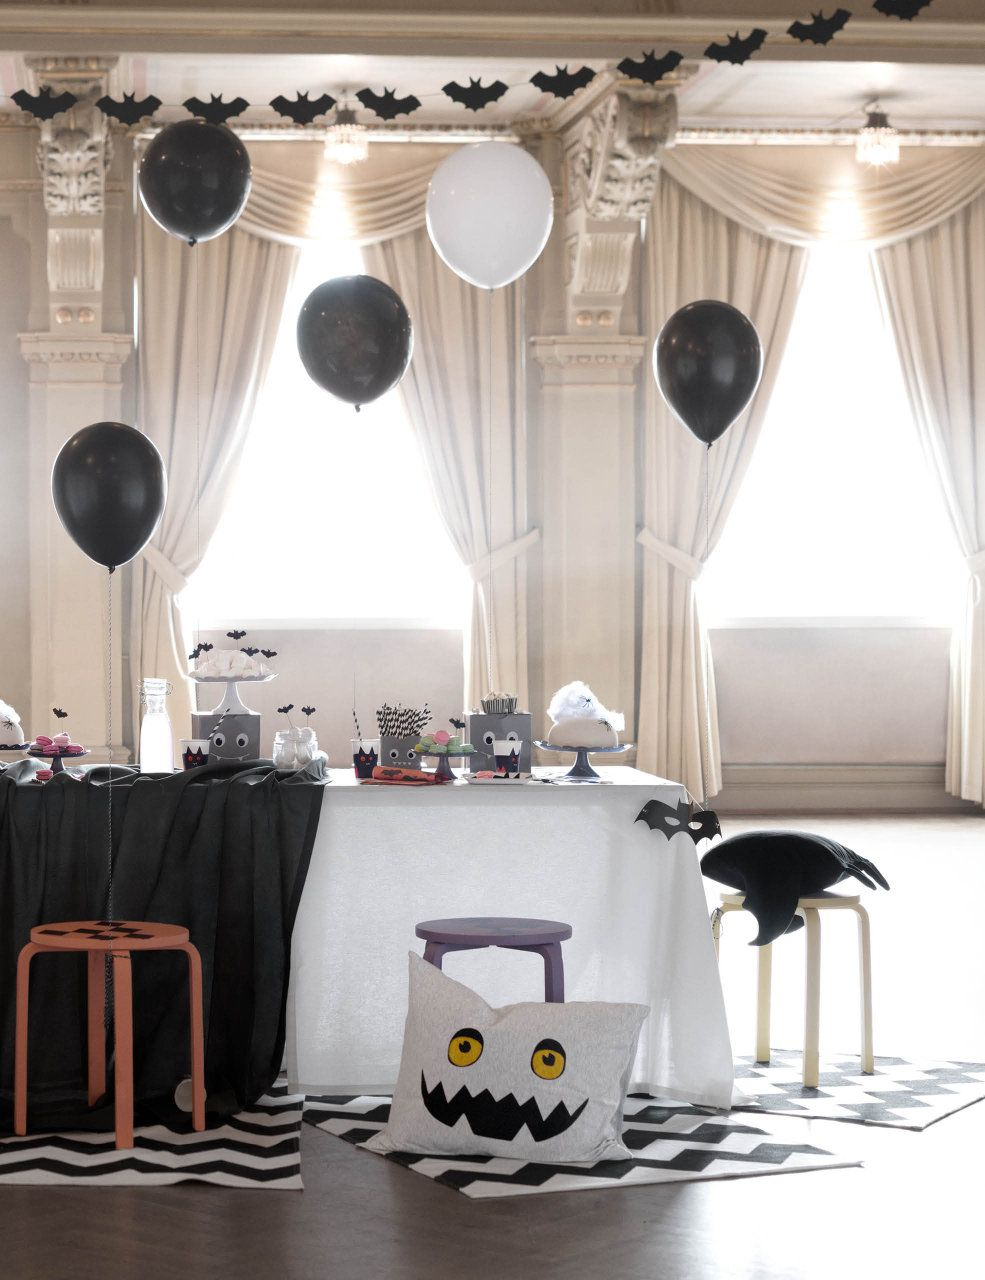 Halloween party ideas via H&M (With images) Playful